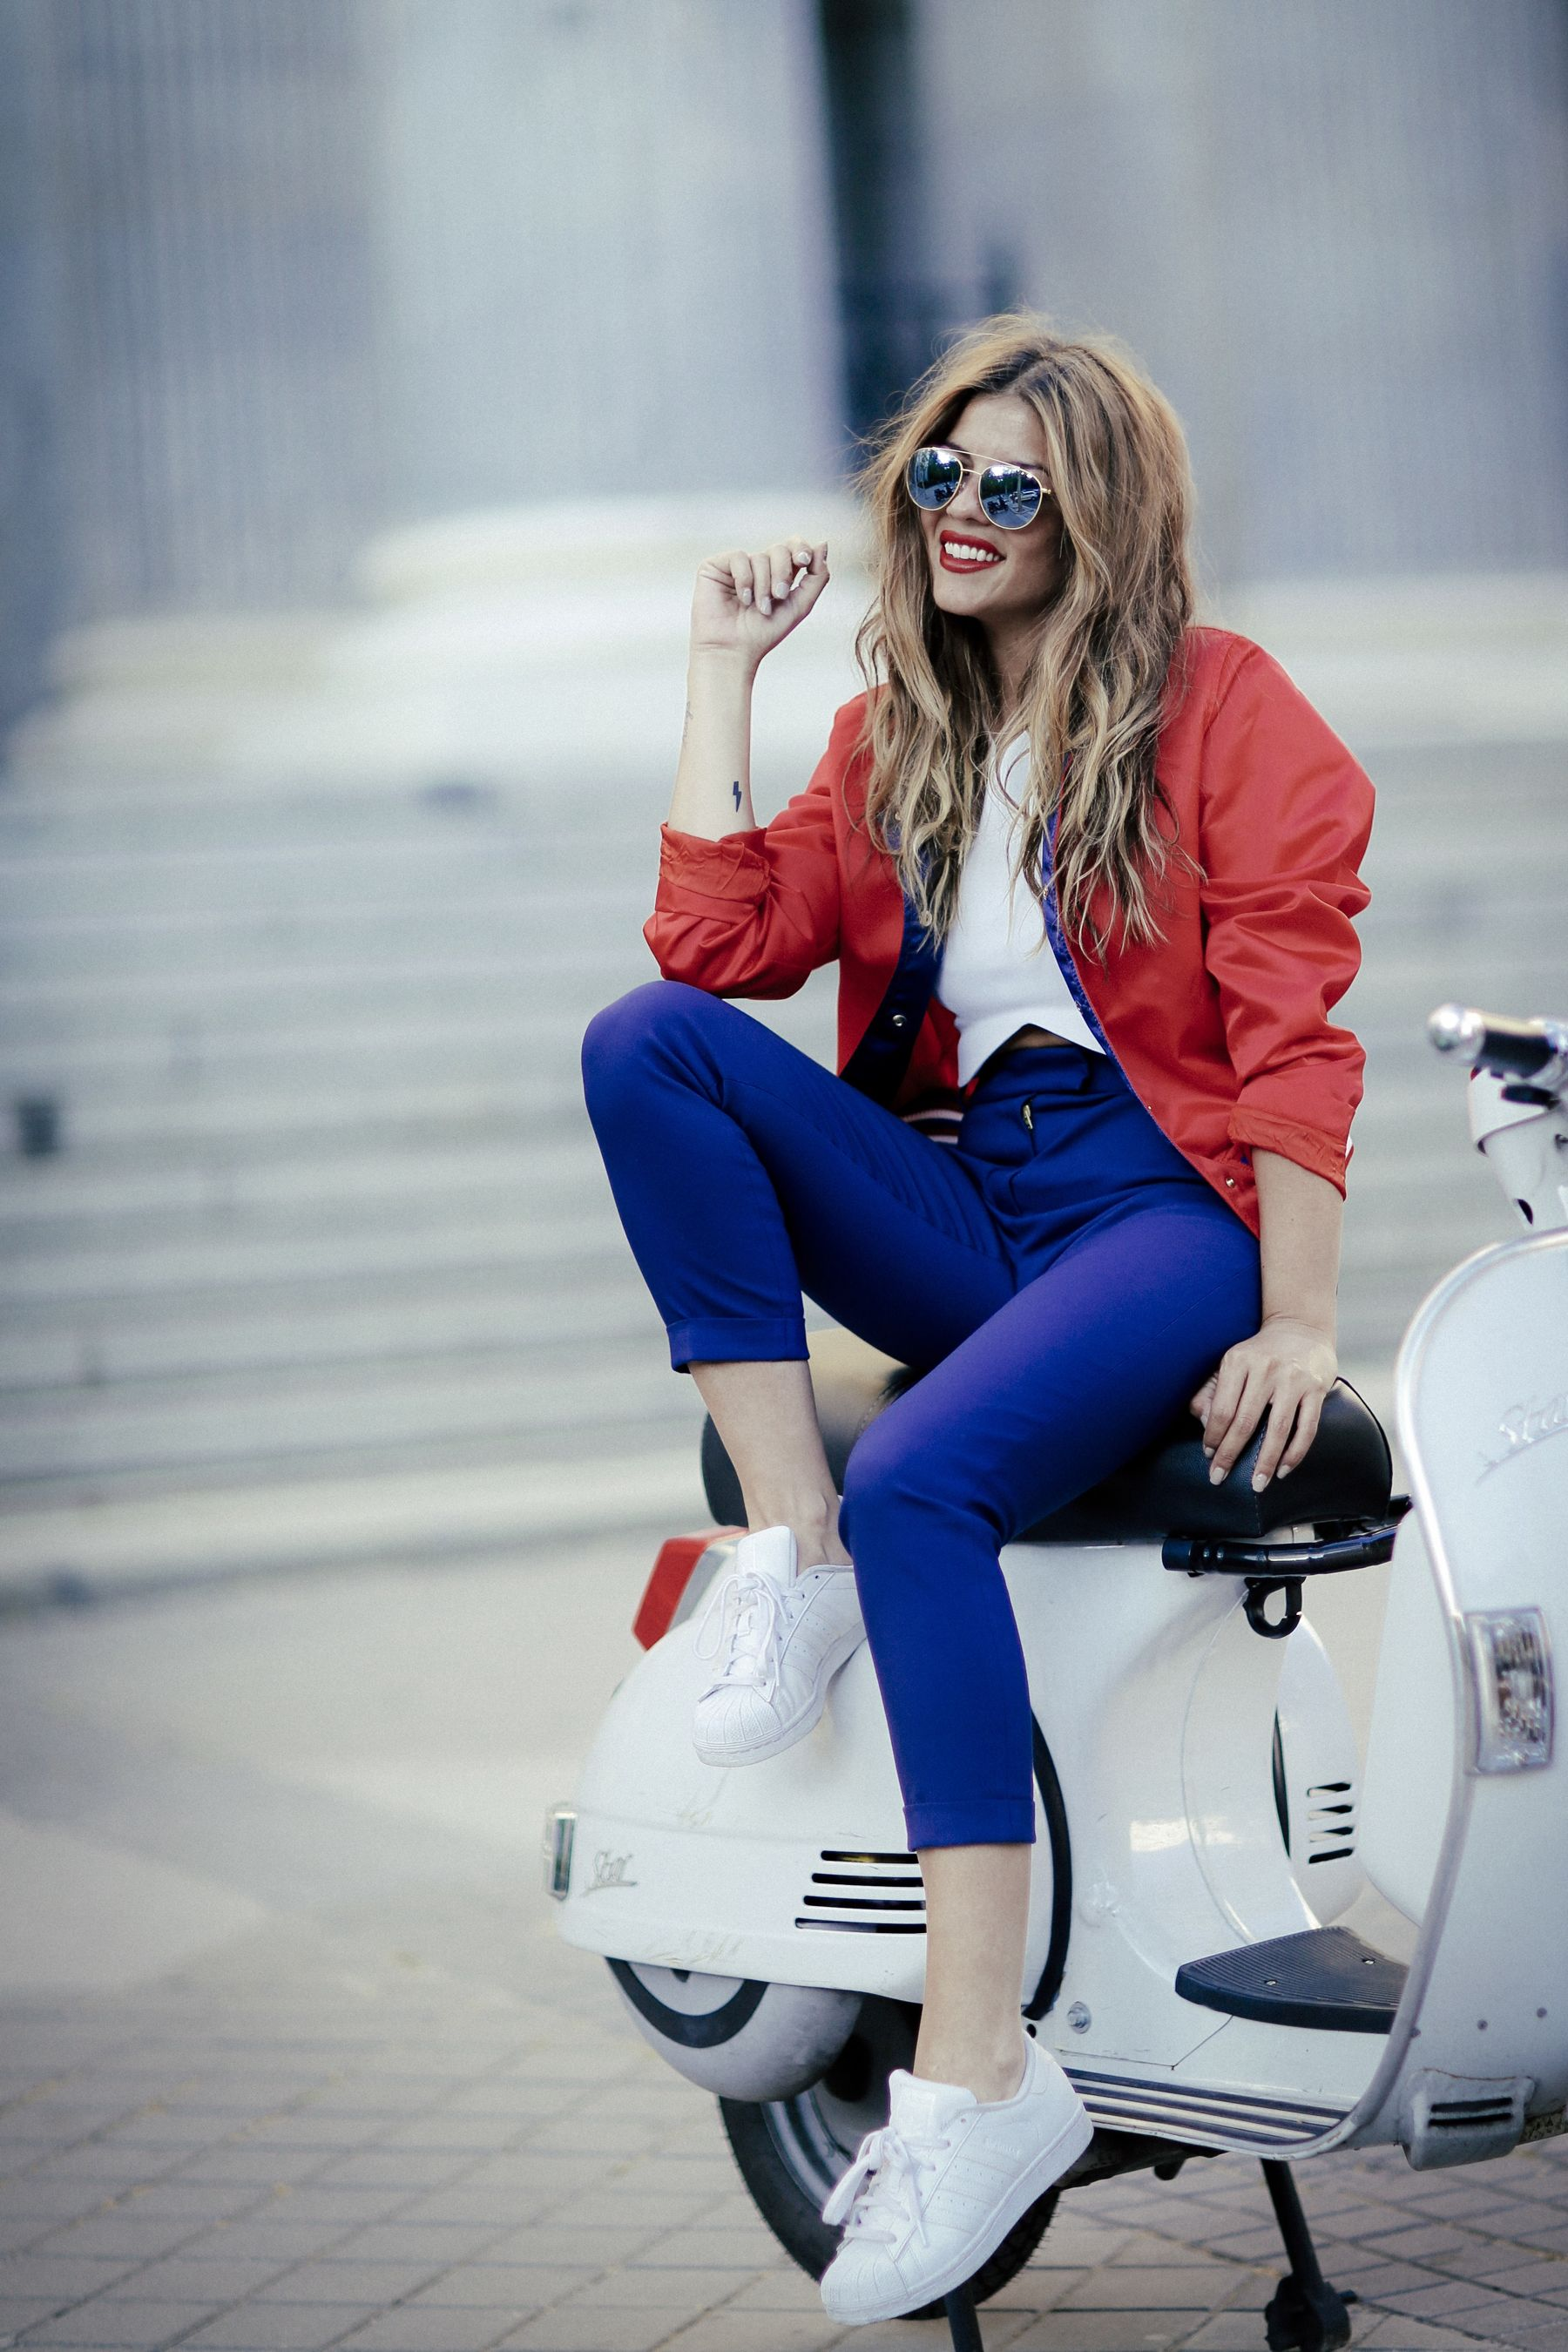 adidas zapatillas sneakers superstar tommy hilfiger collection pants pantalones bomber jacket chaqueta zara top sunglasses gafas de sol madrid outfit look primavera spring street style trendy taste _1